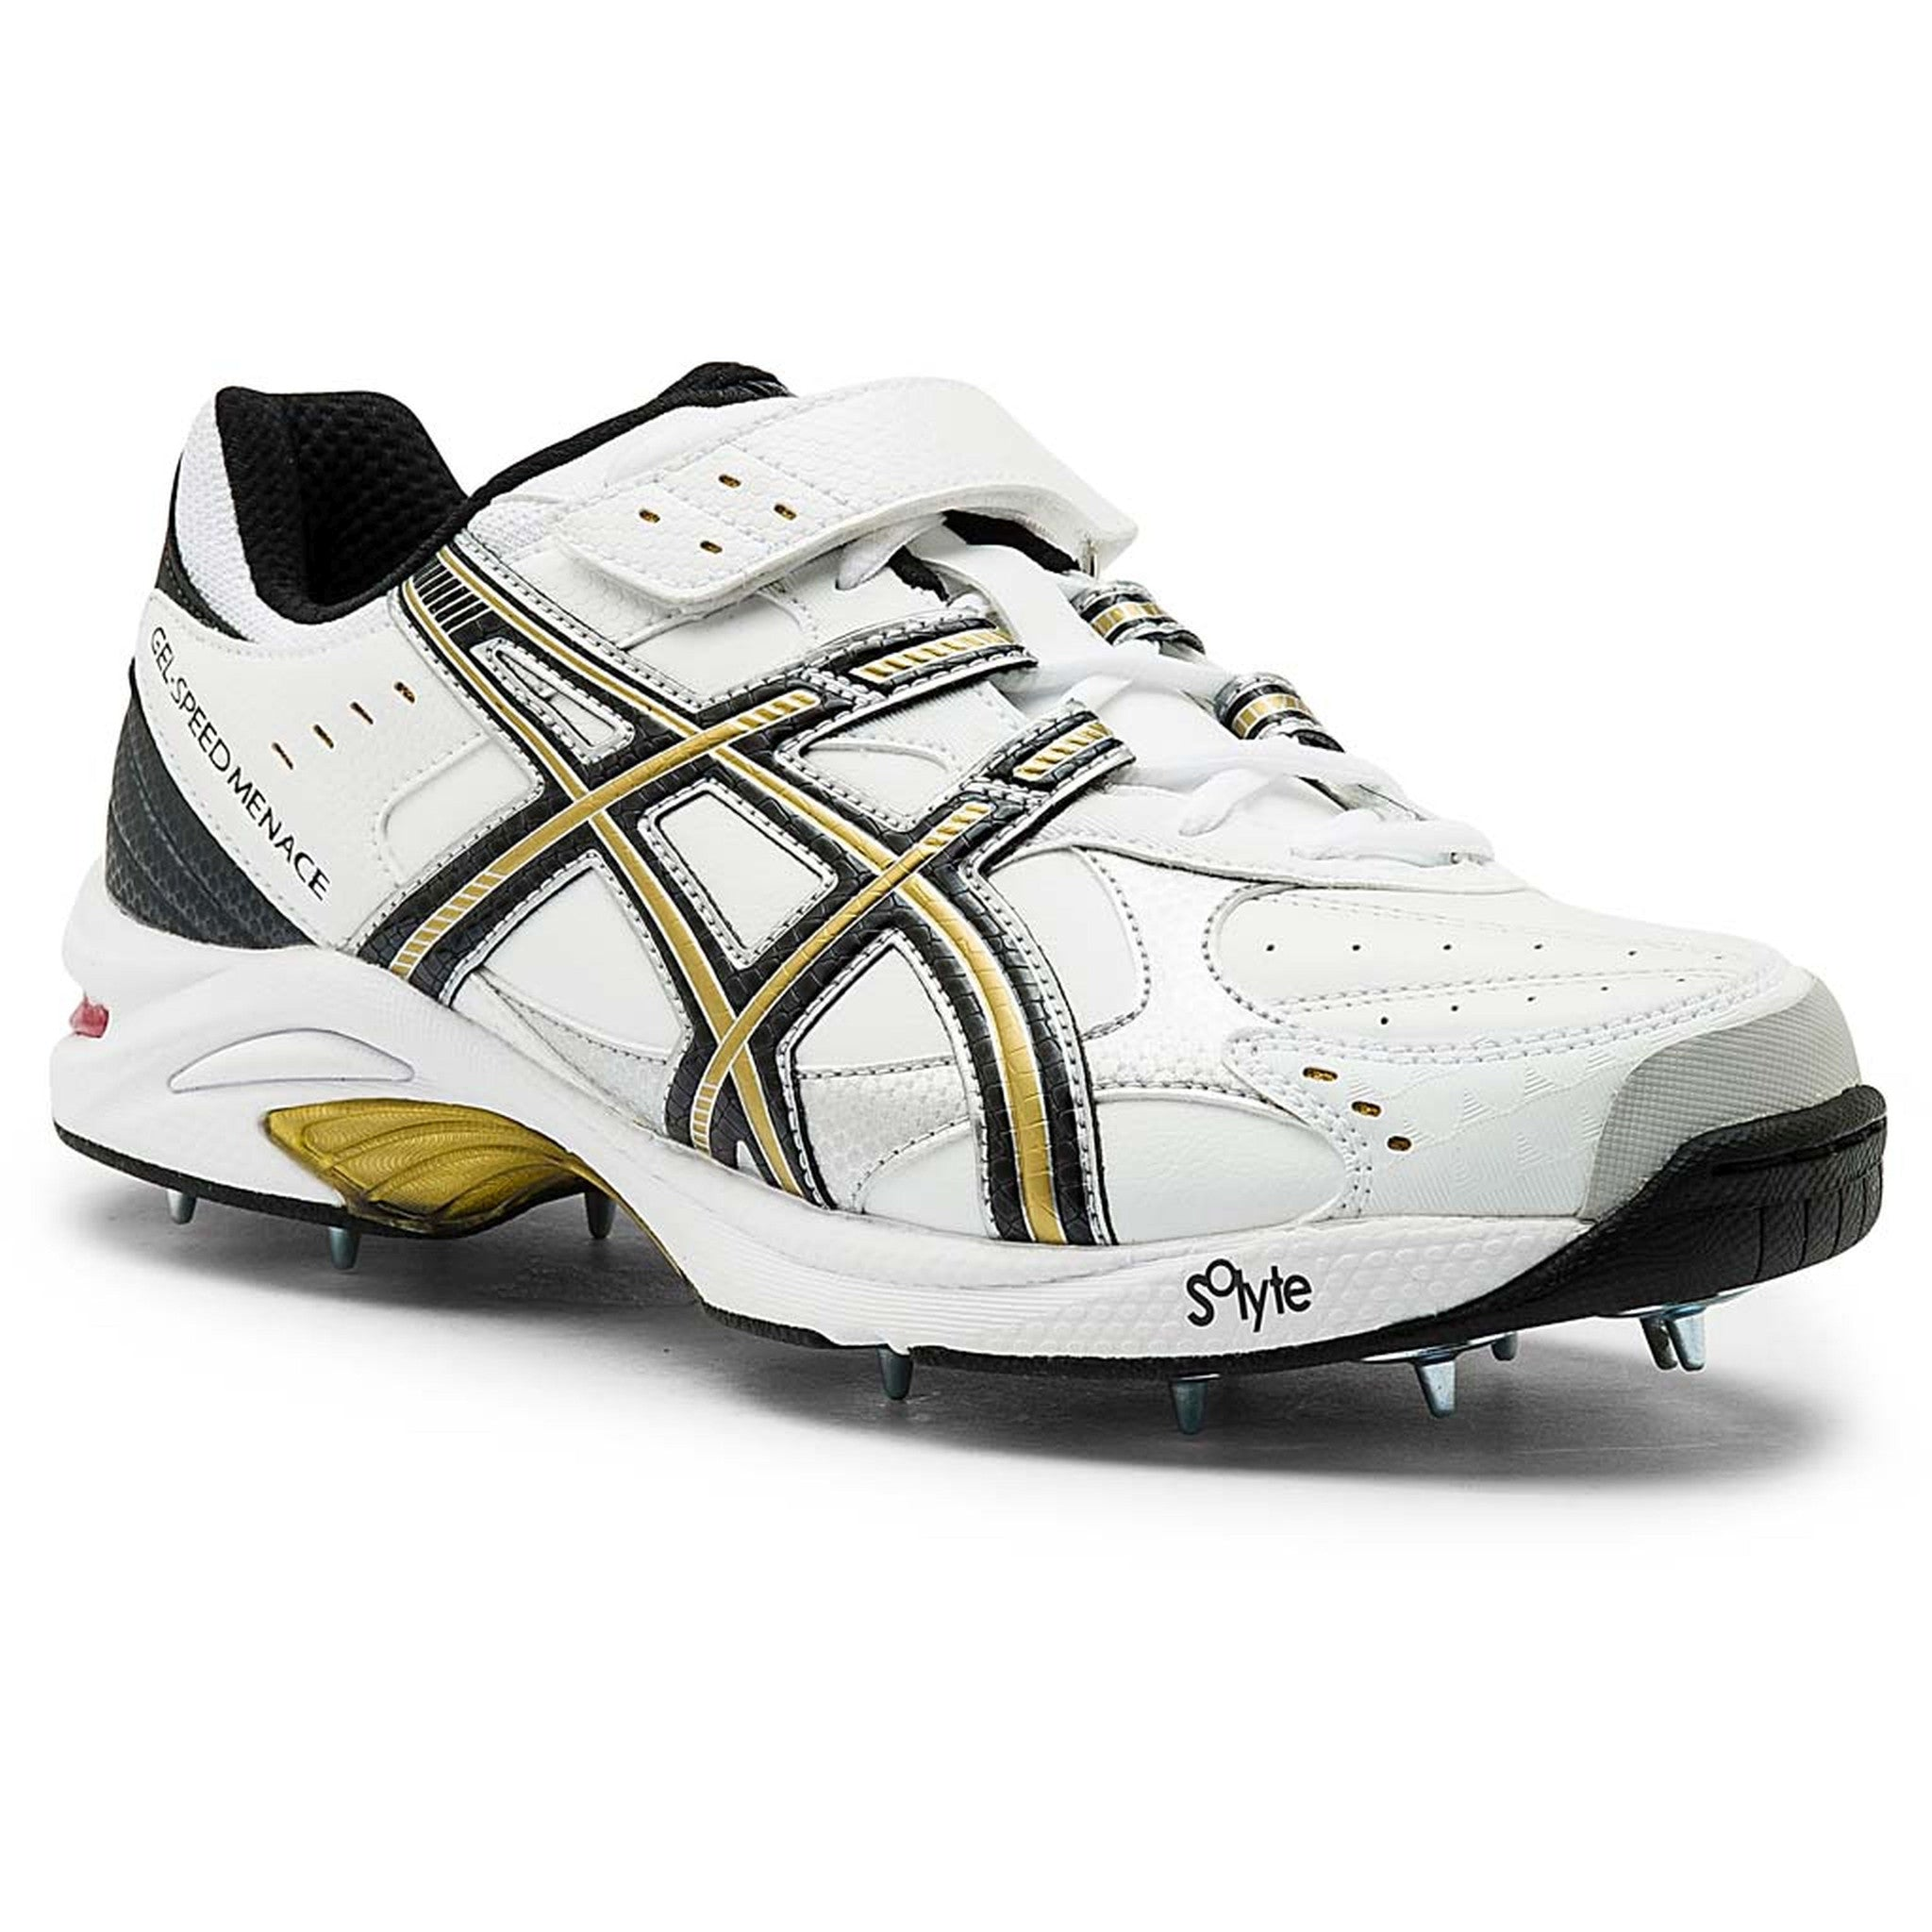 ASICS GEL SPEED MENACE Cricket Shoes Bowling Shoes Pro Series